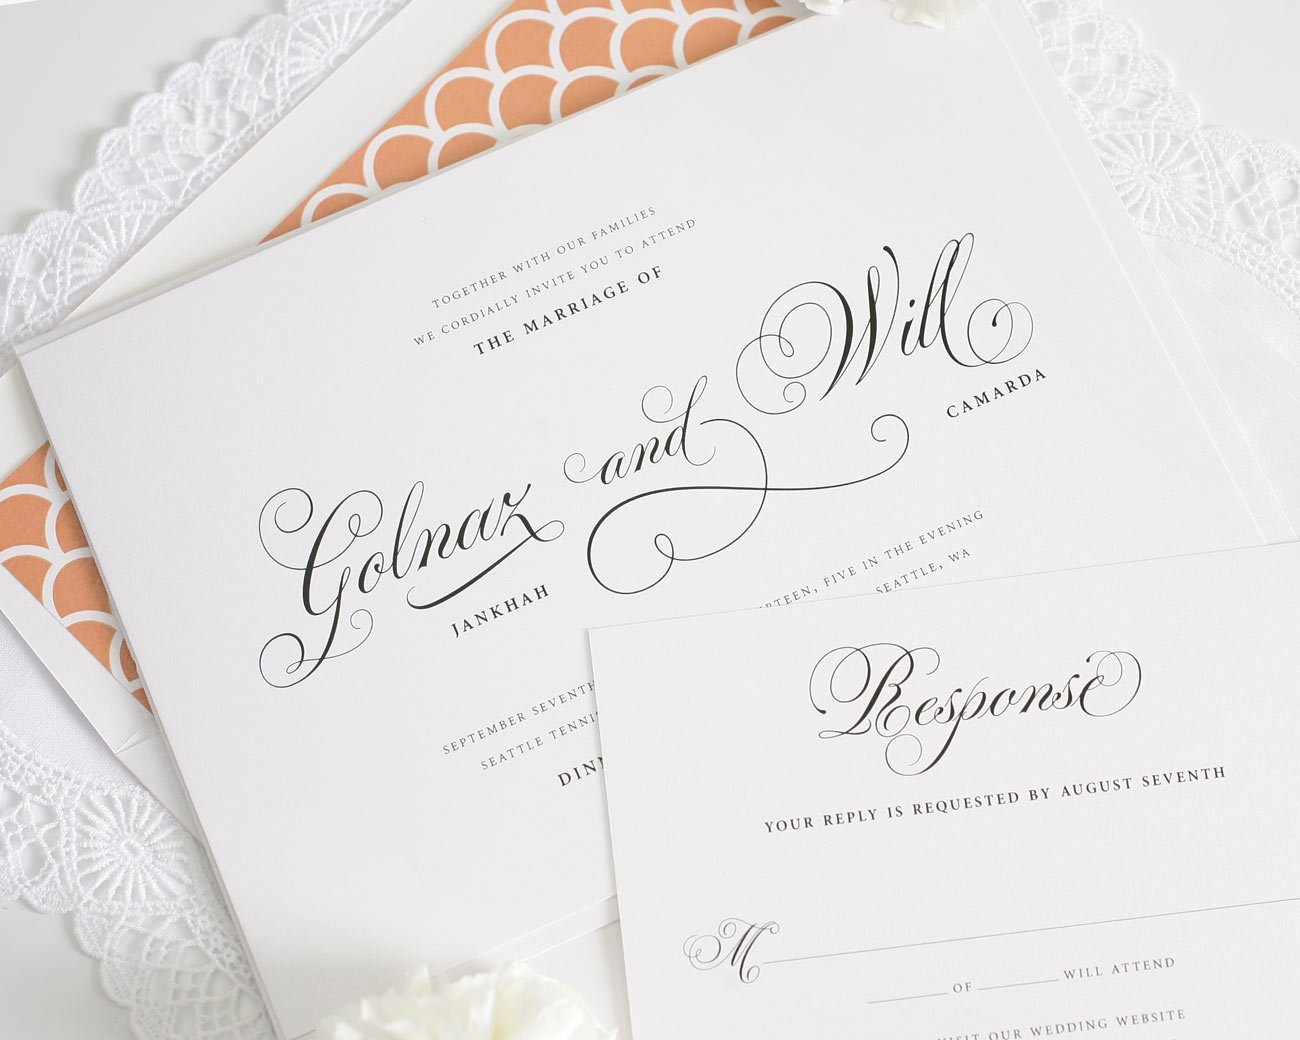 Peach scallop wedding invitations